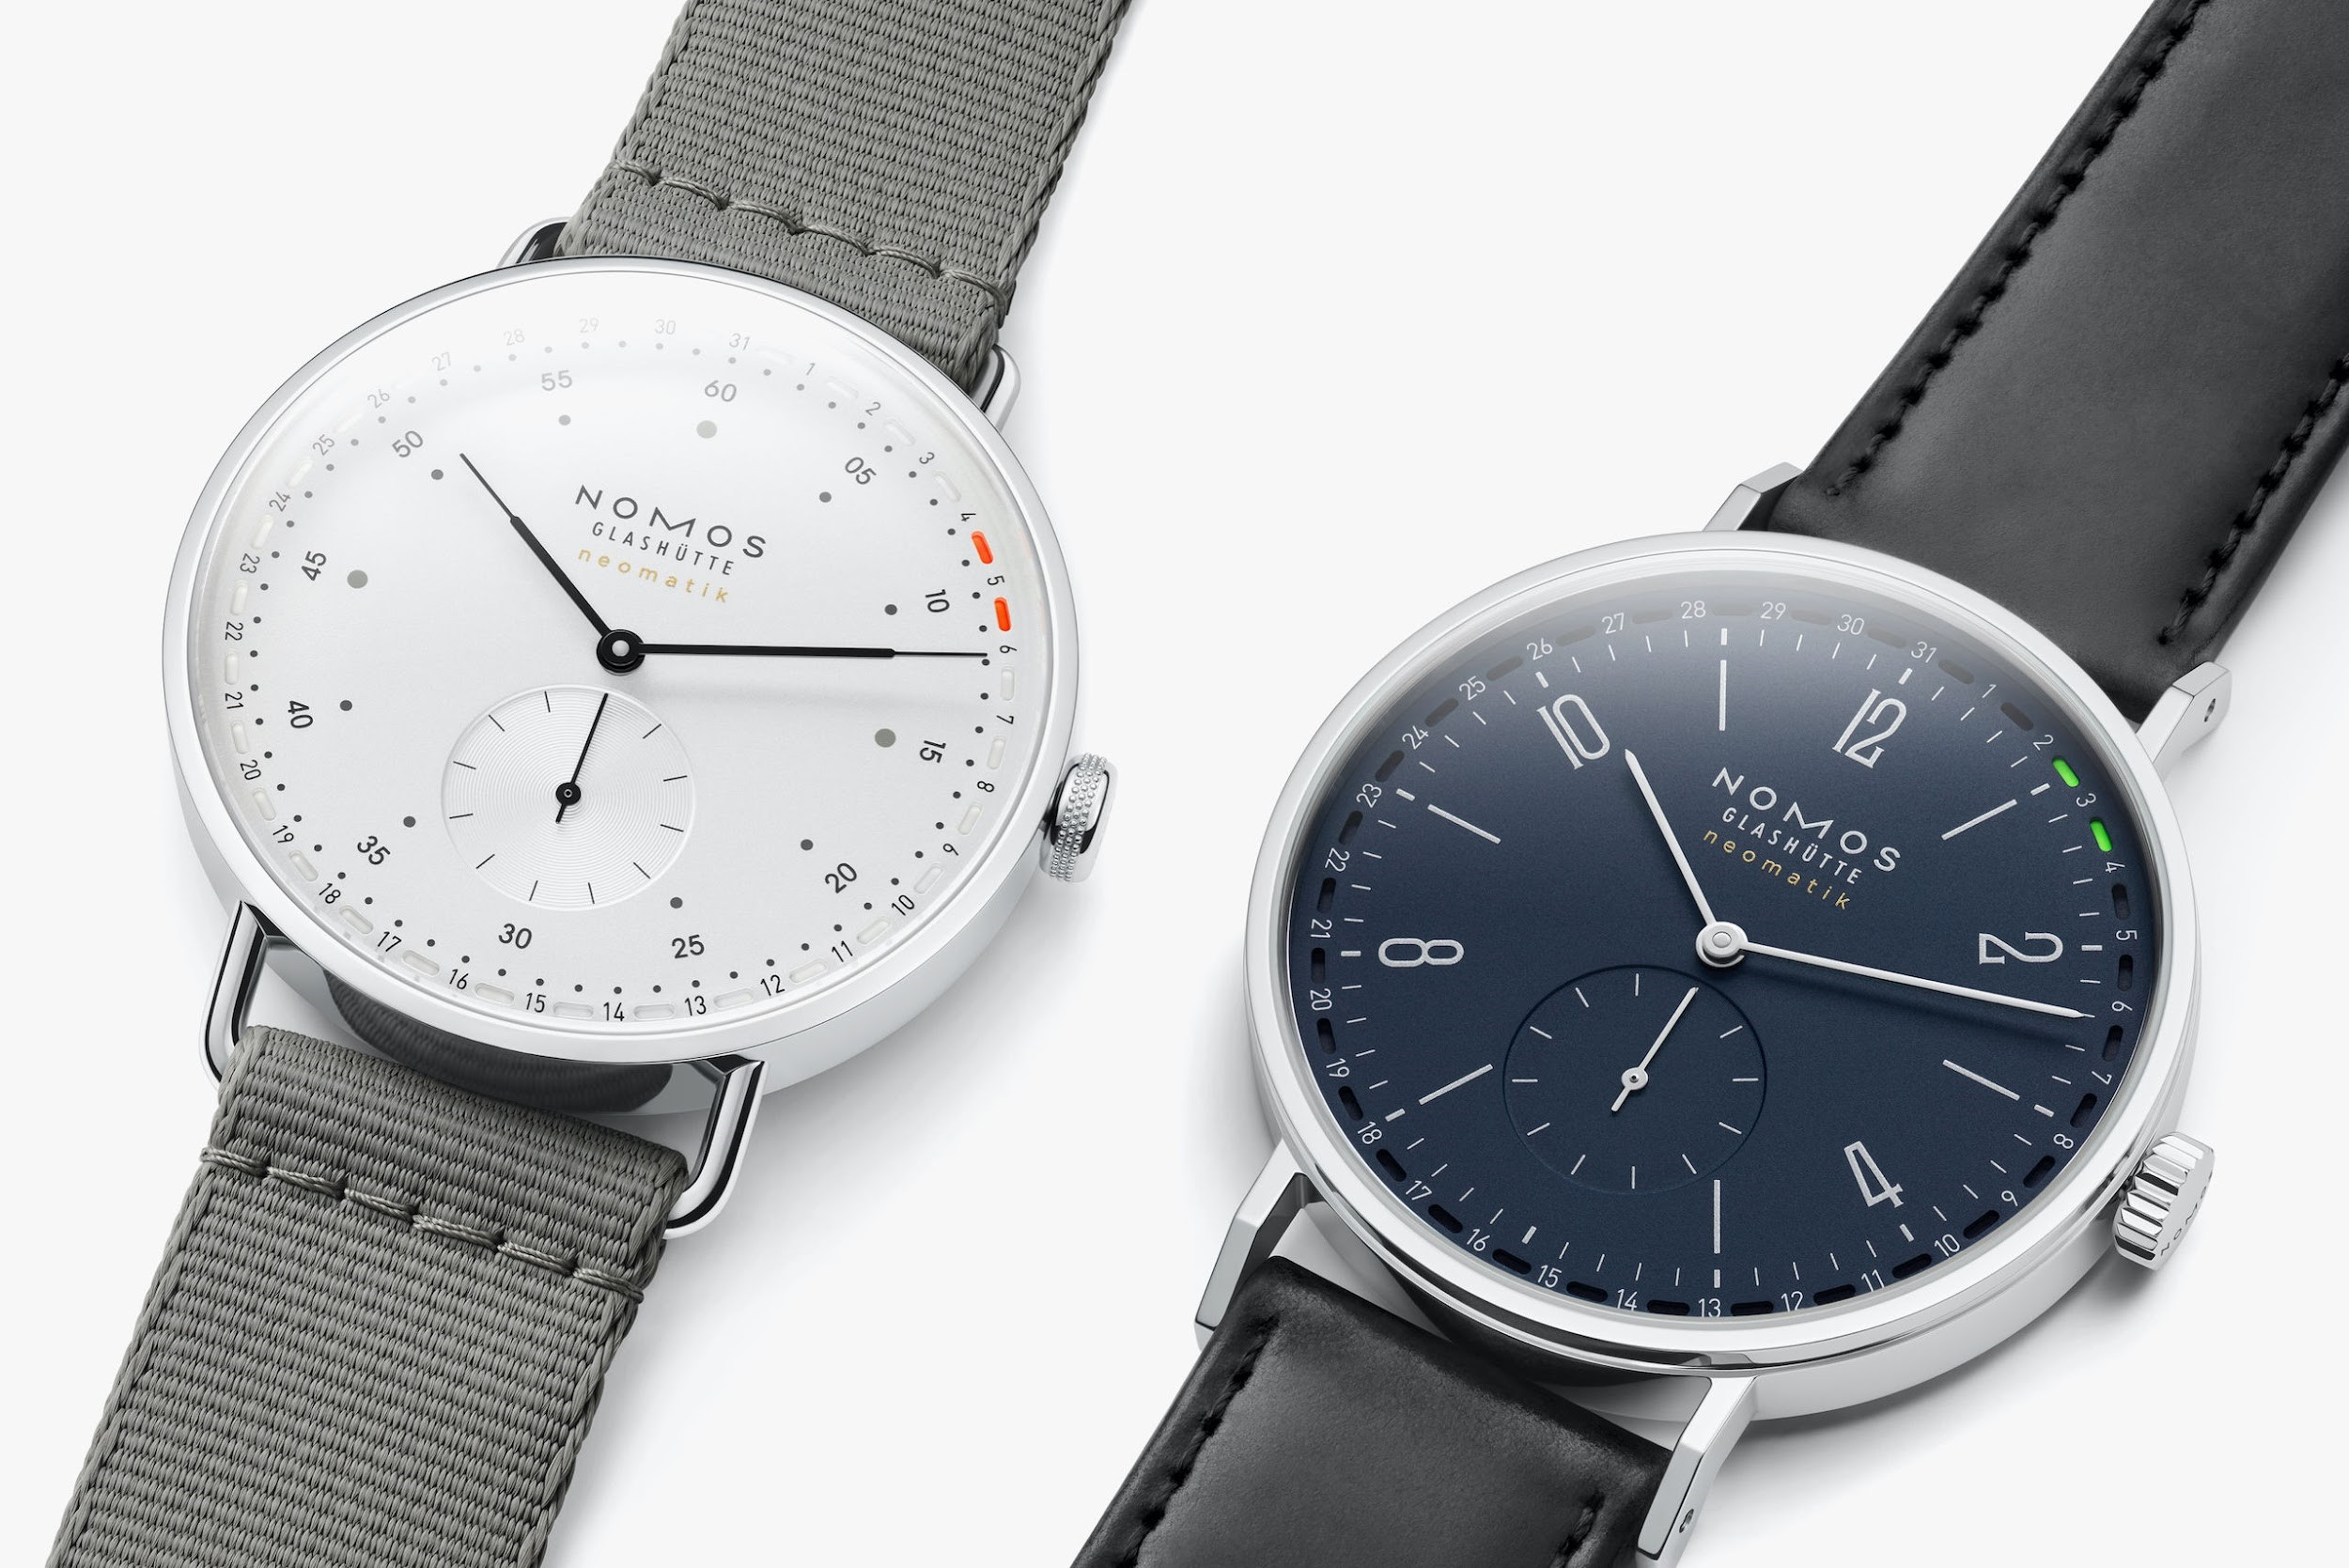 Nomos Glashutte Watches: Topnotch and Most-Rated Nomos Watches